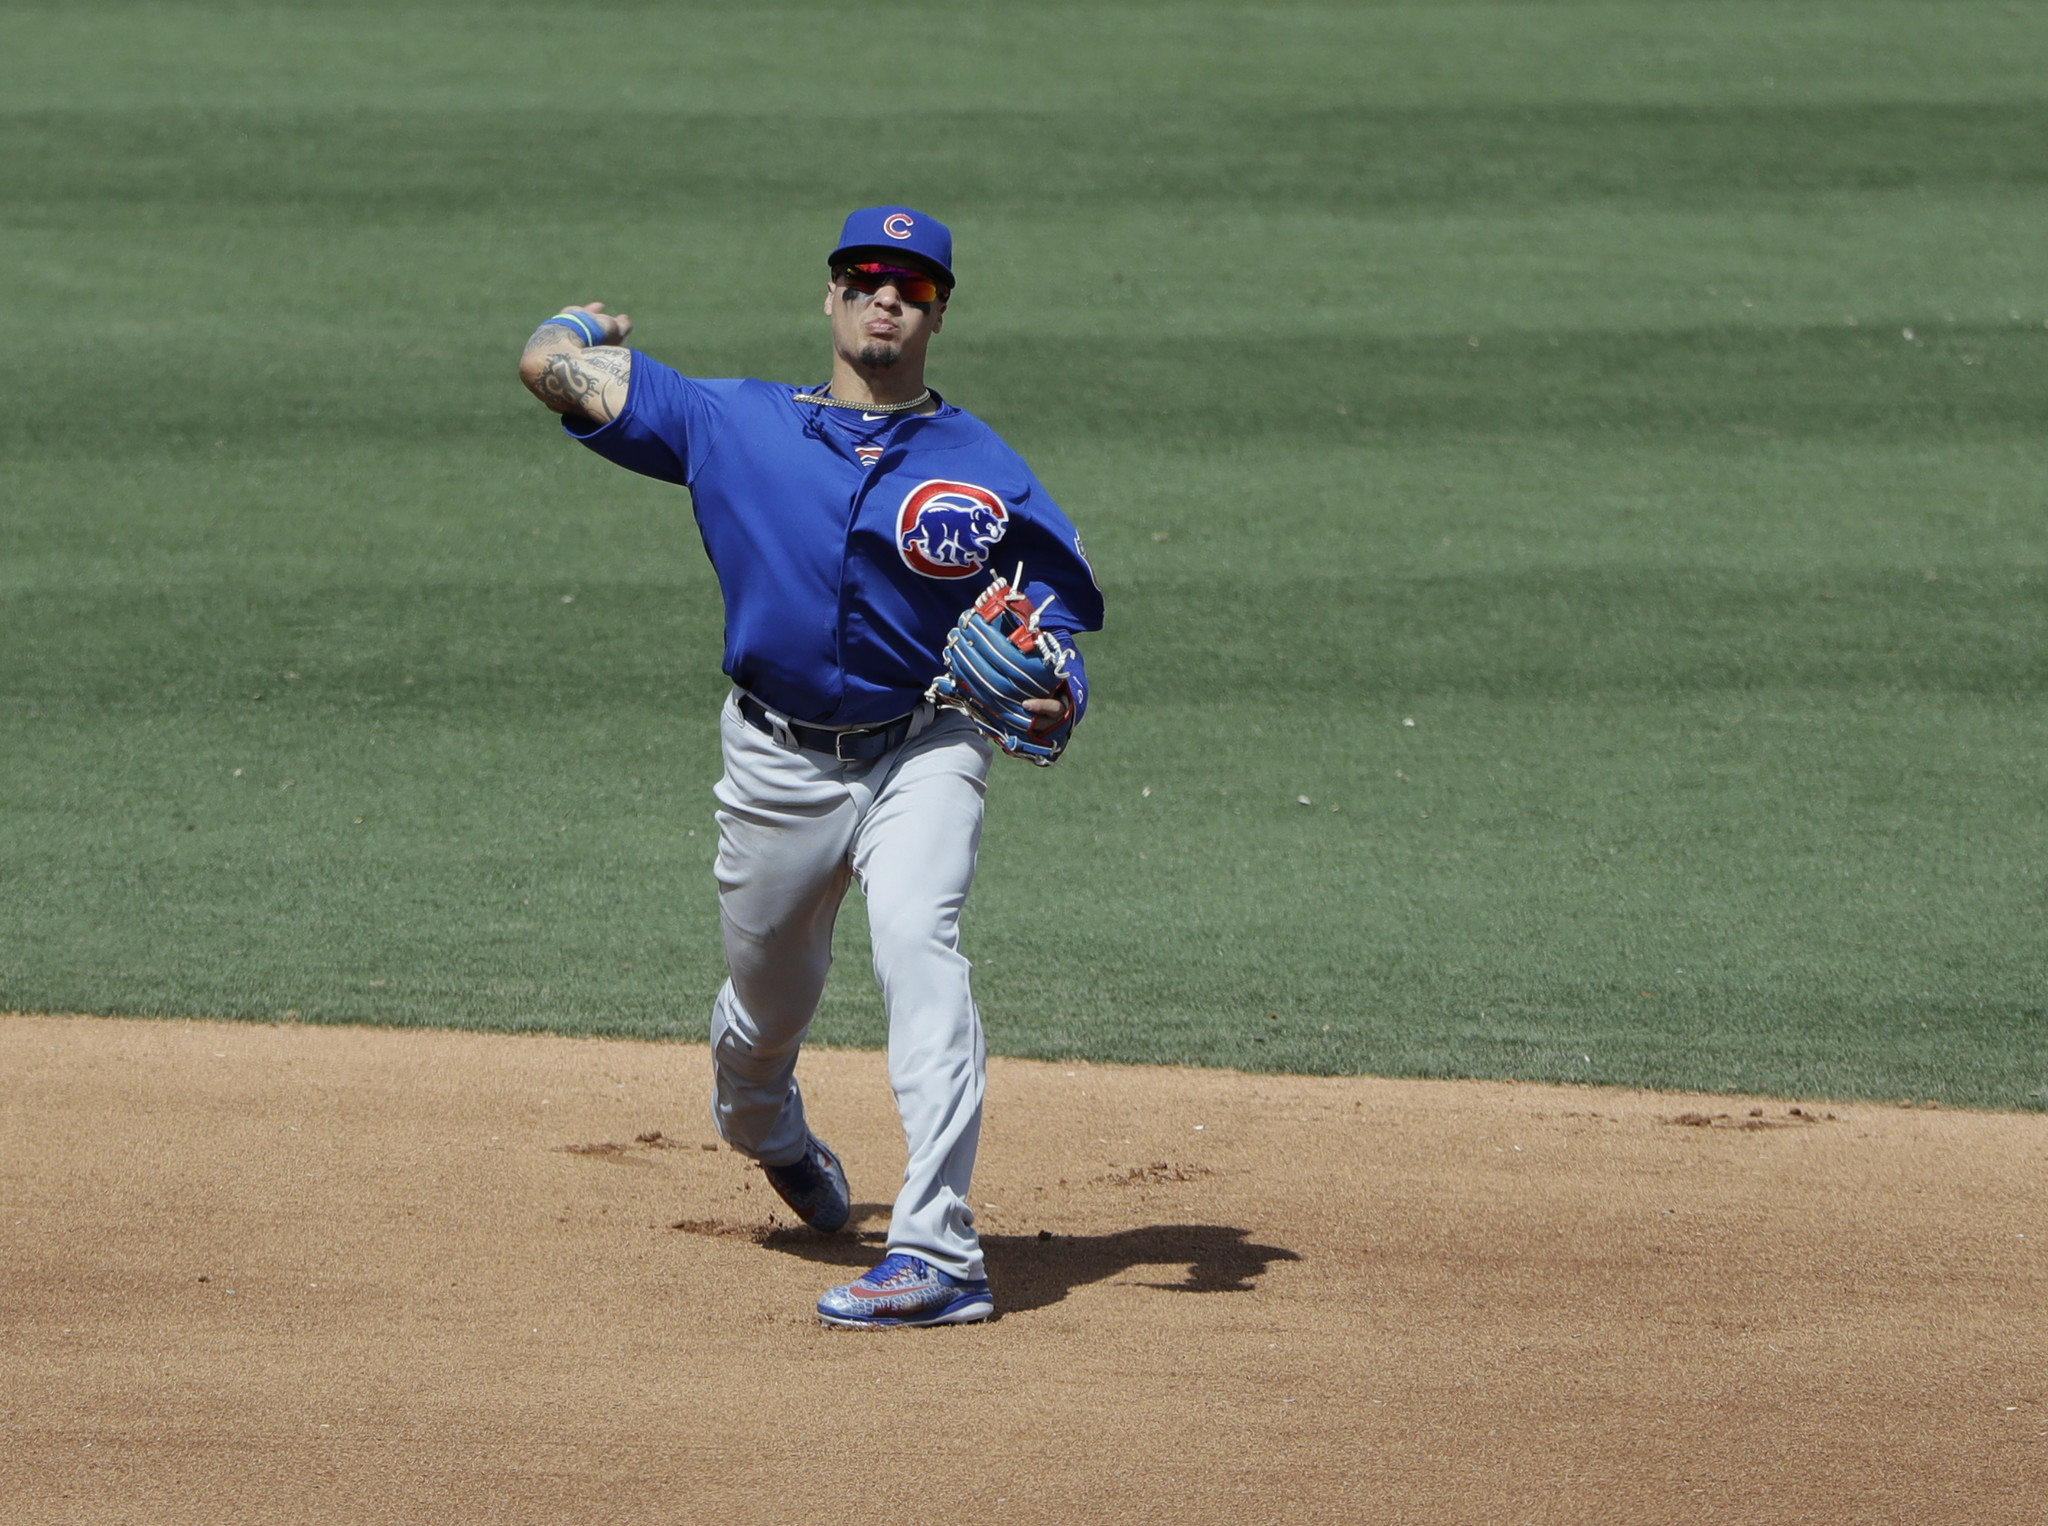 Ct-addison-russell-back-injury-cubs-spt-0329-20170328